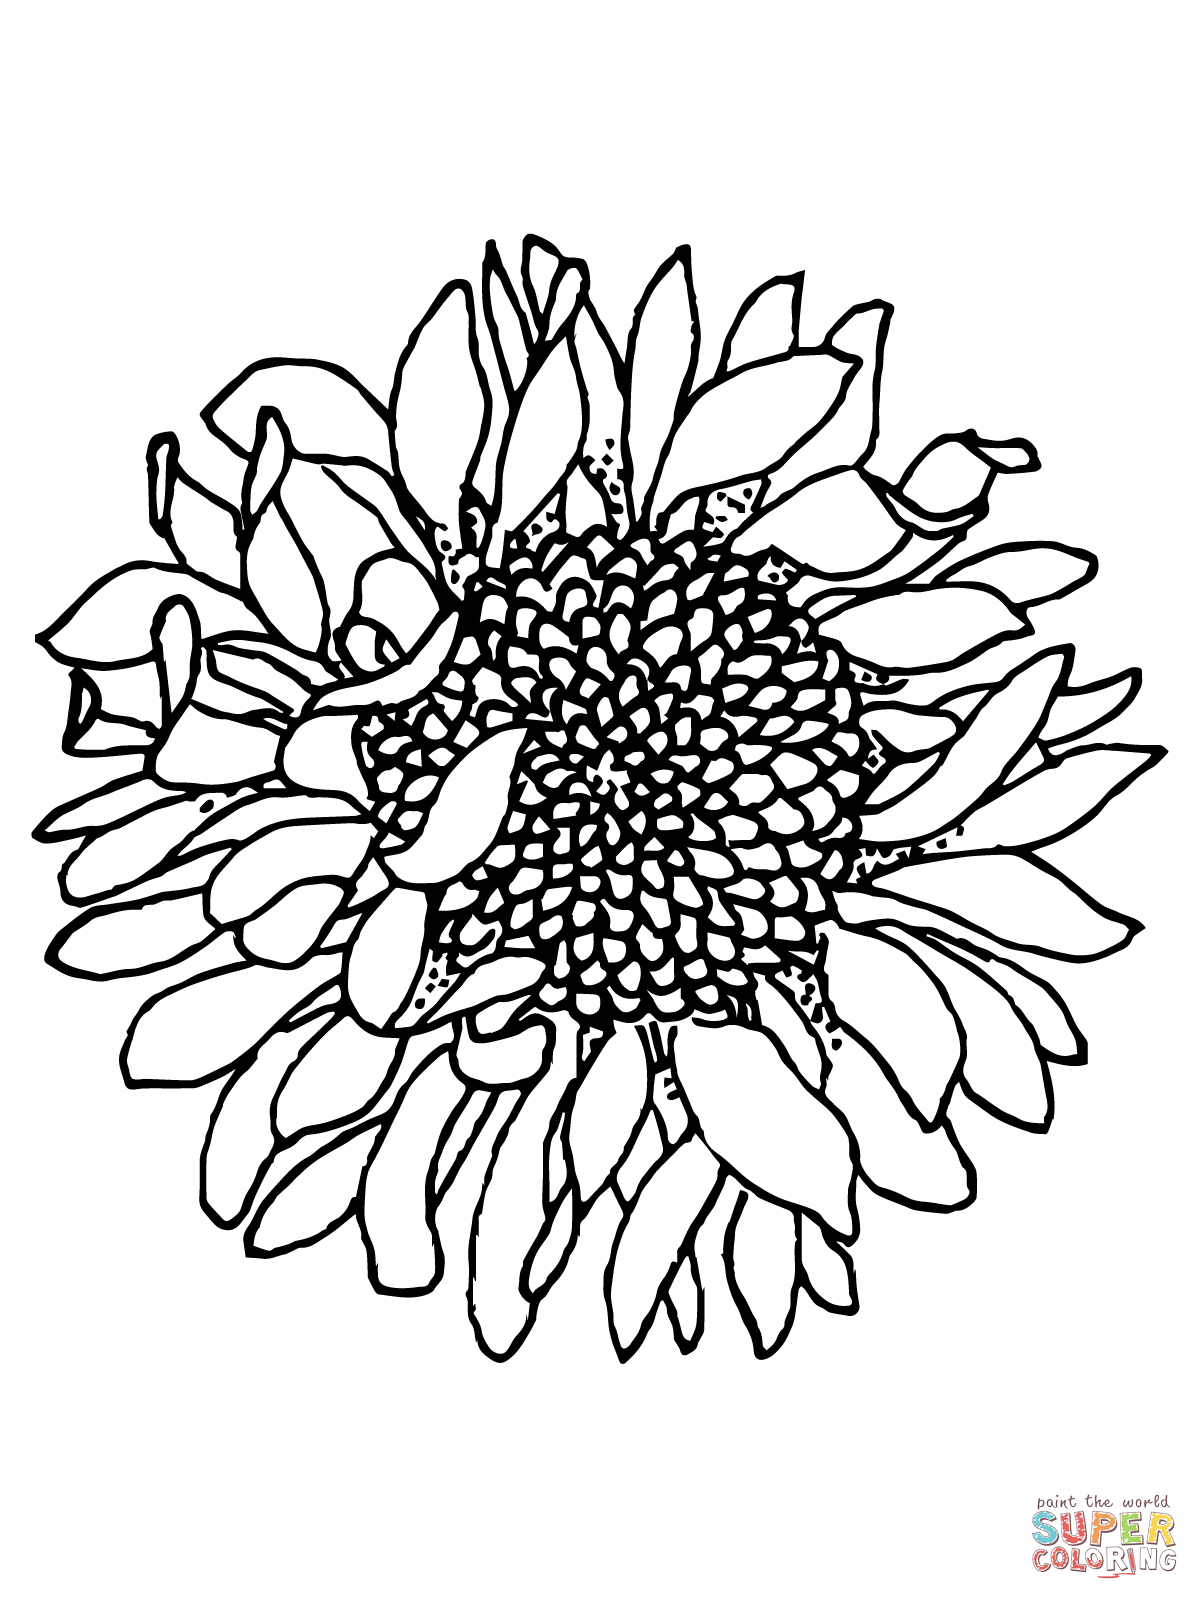 sunflower coloring pictures sunflower coloring pages only one coloring pages pictures sunflower coloring